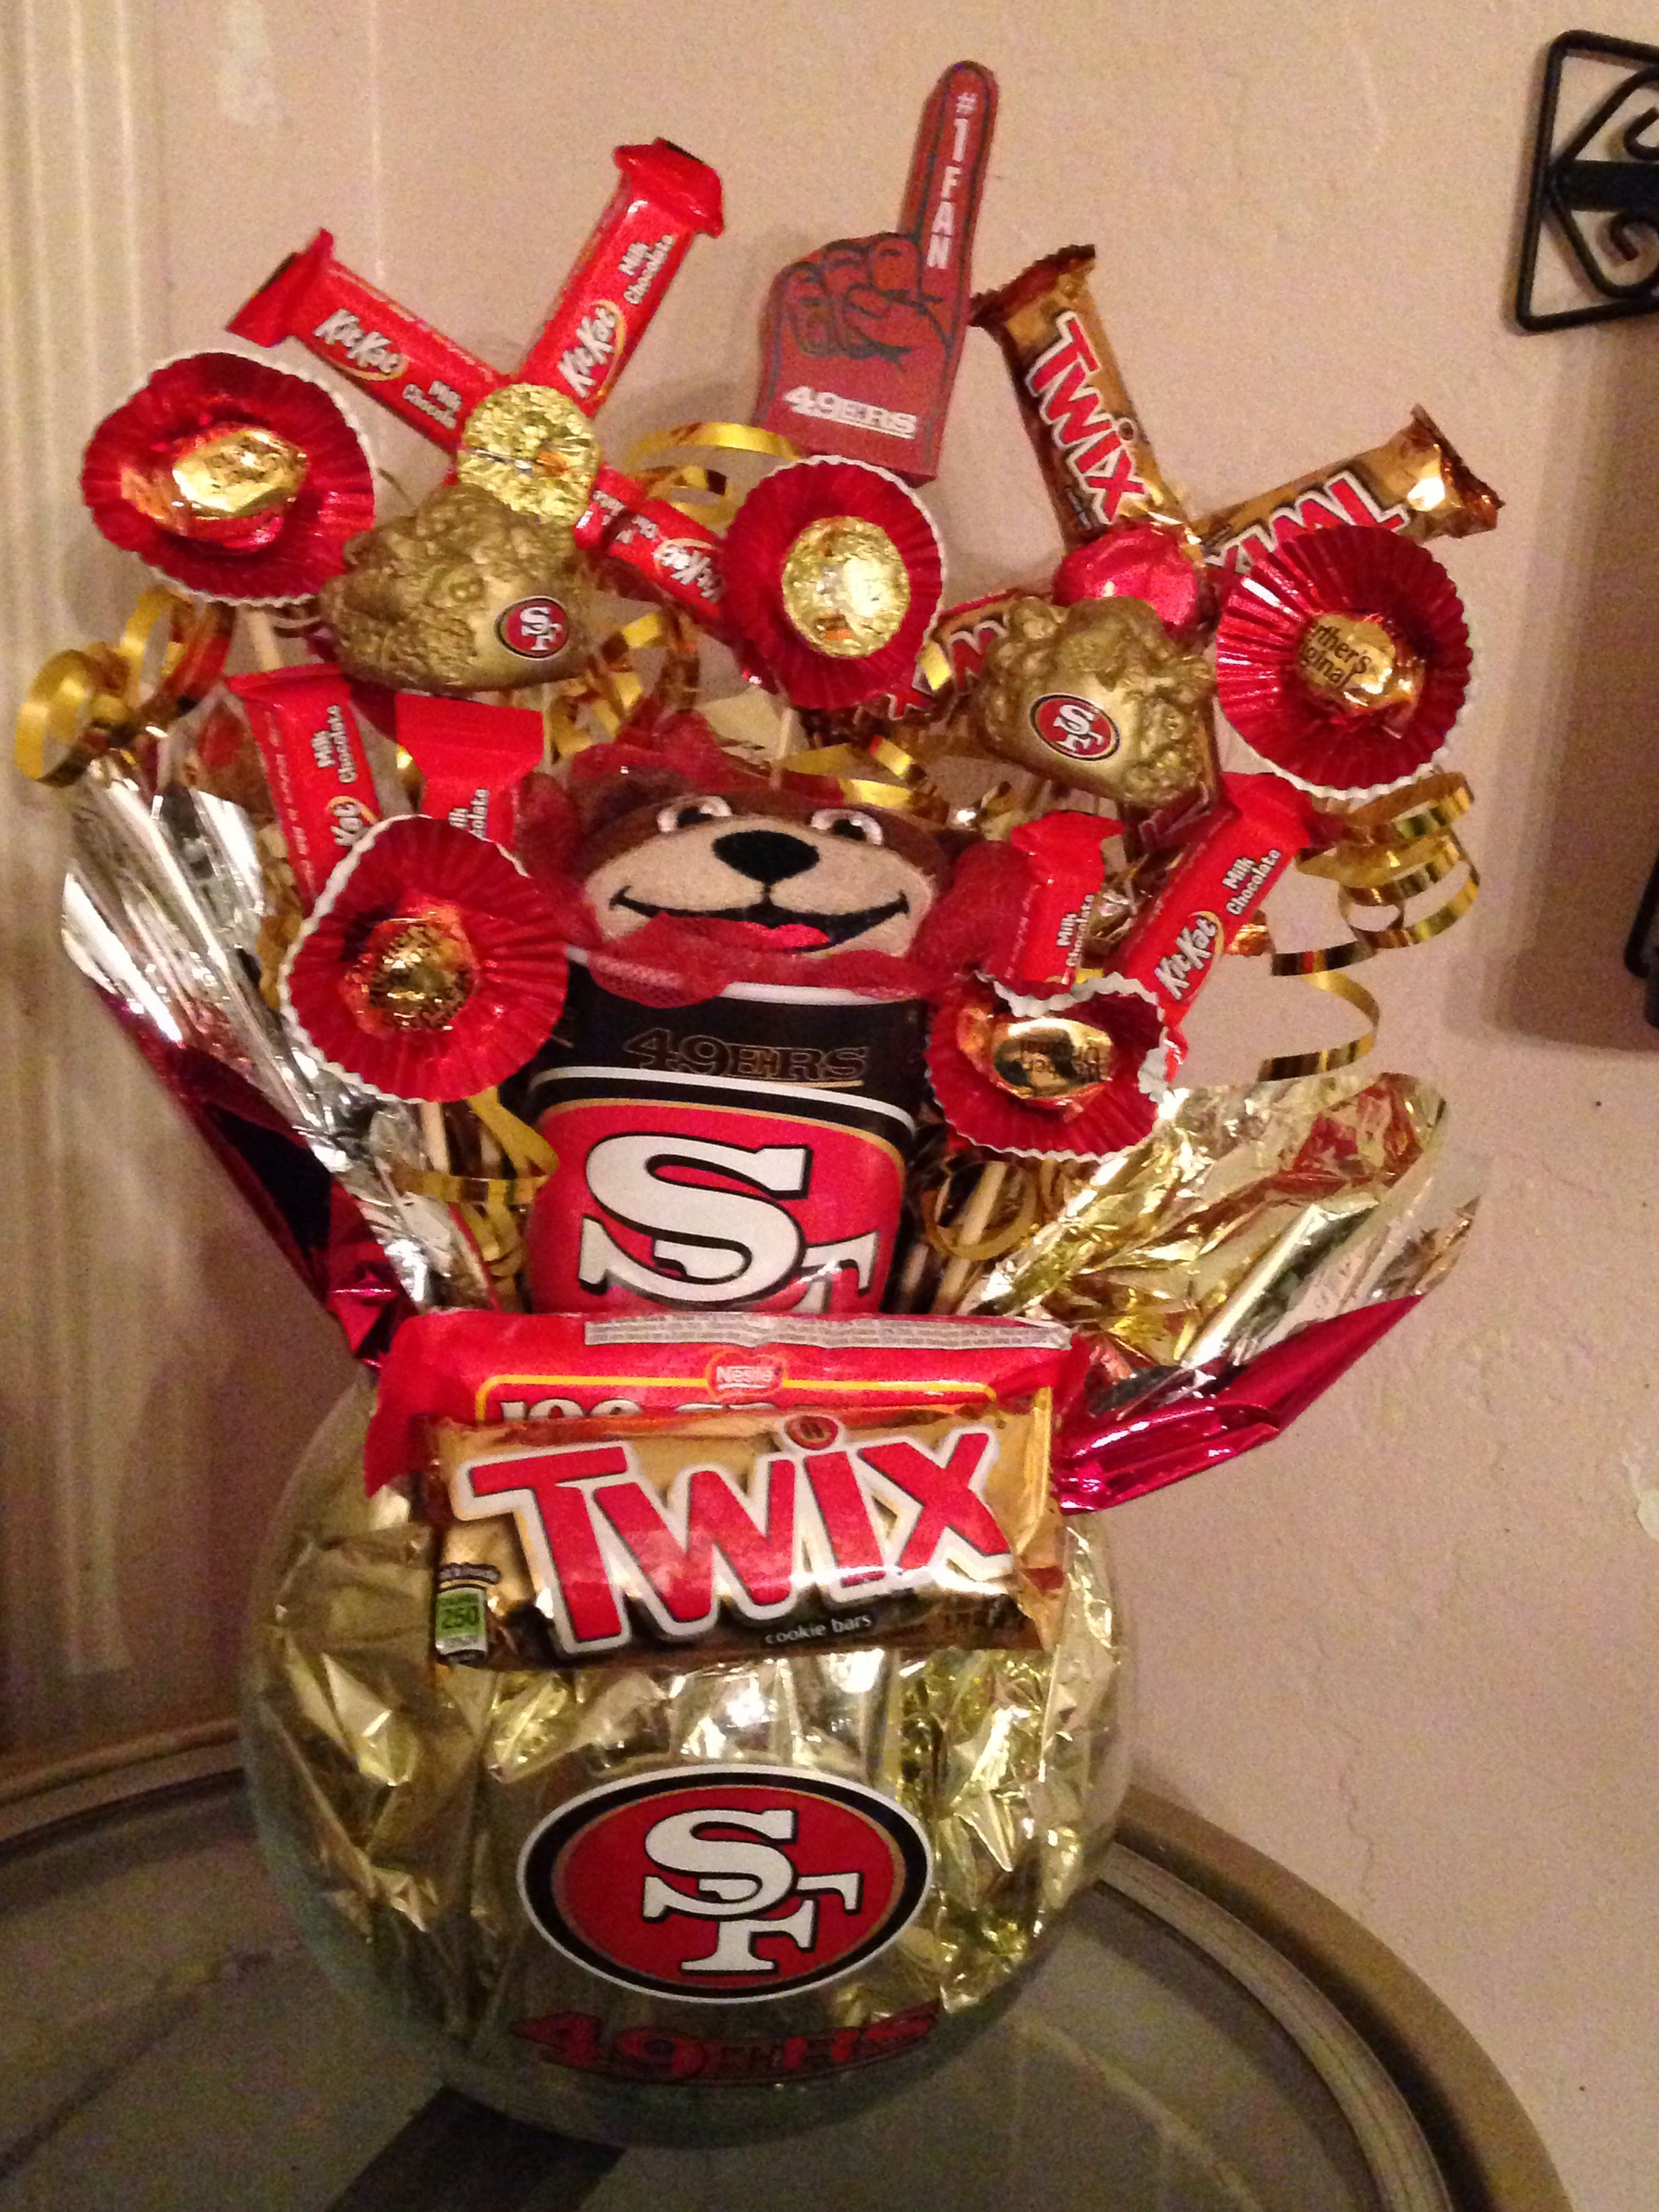 49ers candy bouquet made of candy and things found at